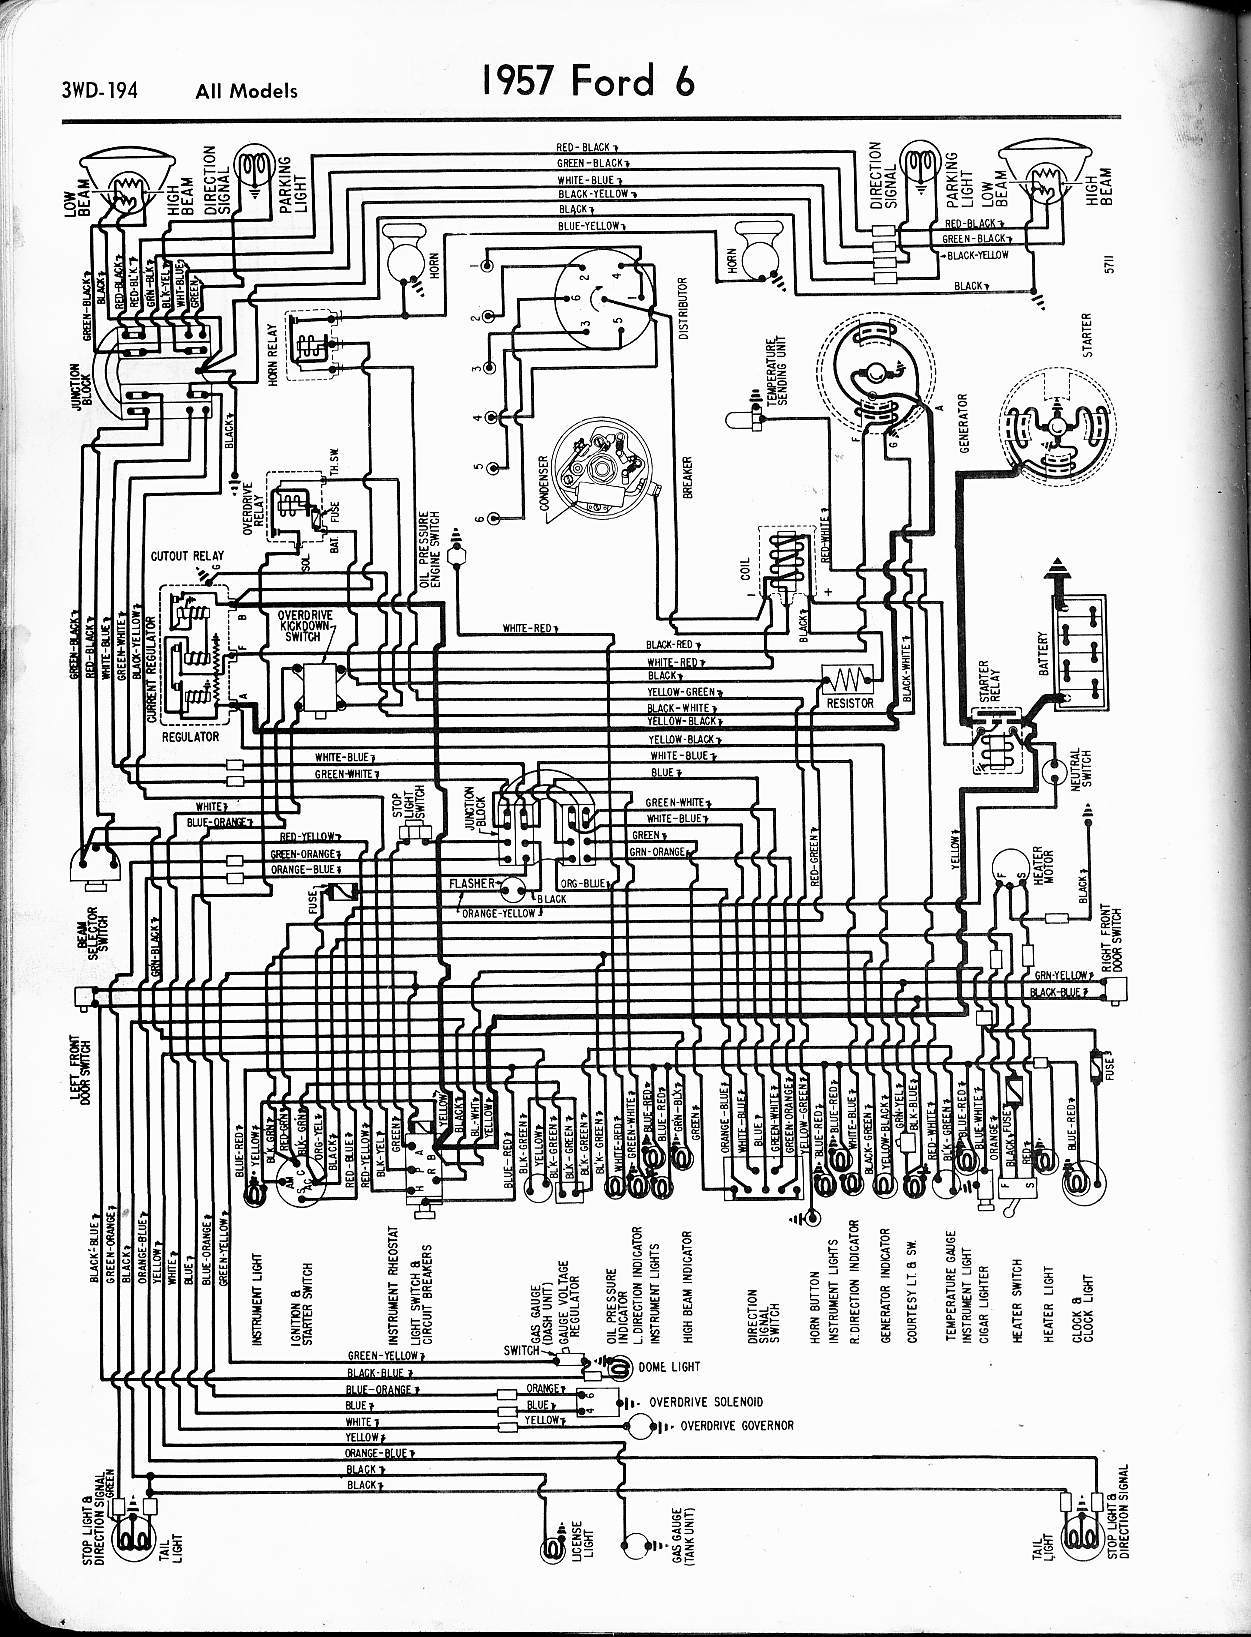 diagram] 1977 ford truck wiring diagram full version hd quality wiring  diagram - loth-diagram.expertsuniversity.it  diagram database - expertsuniversity.it